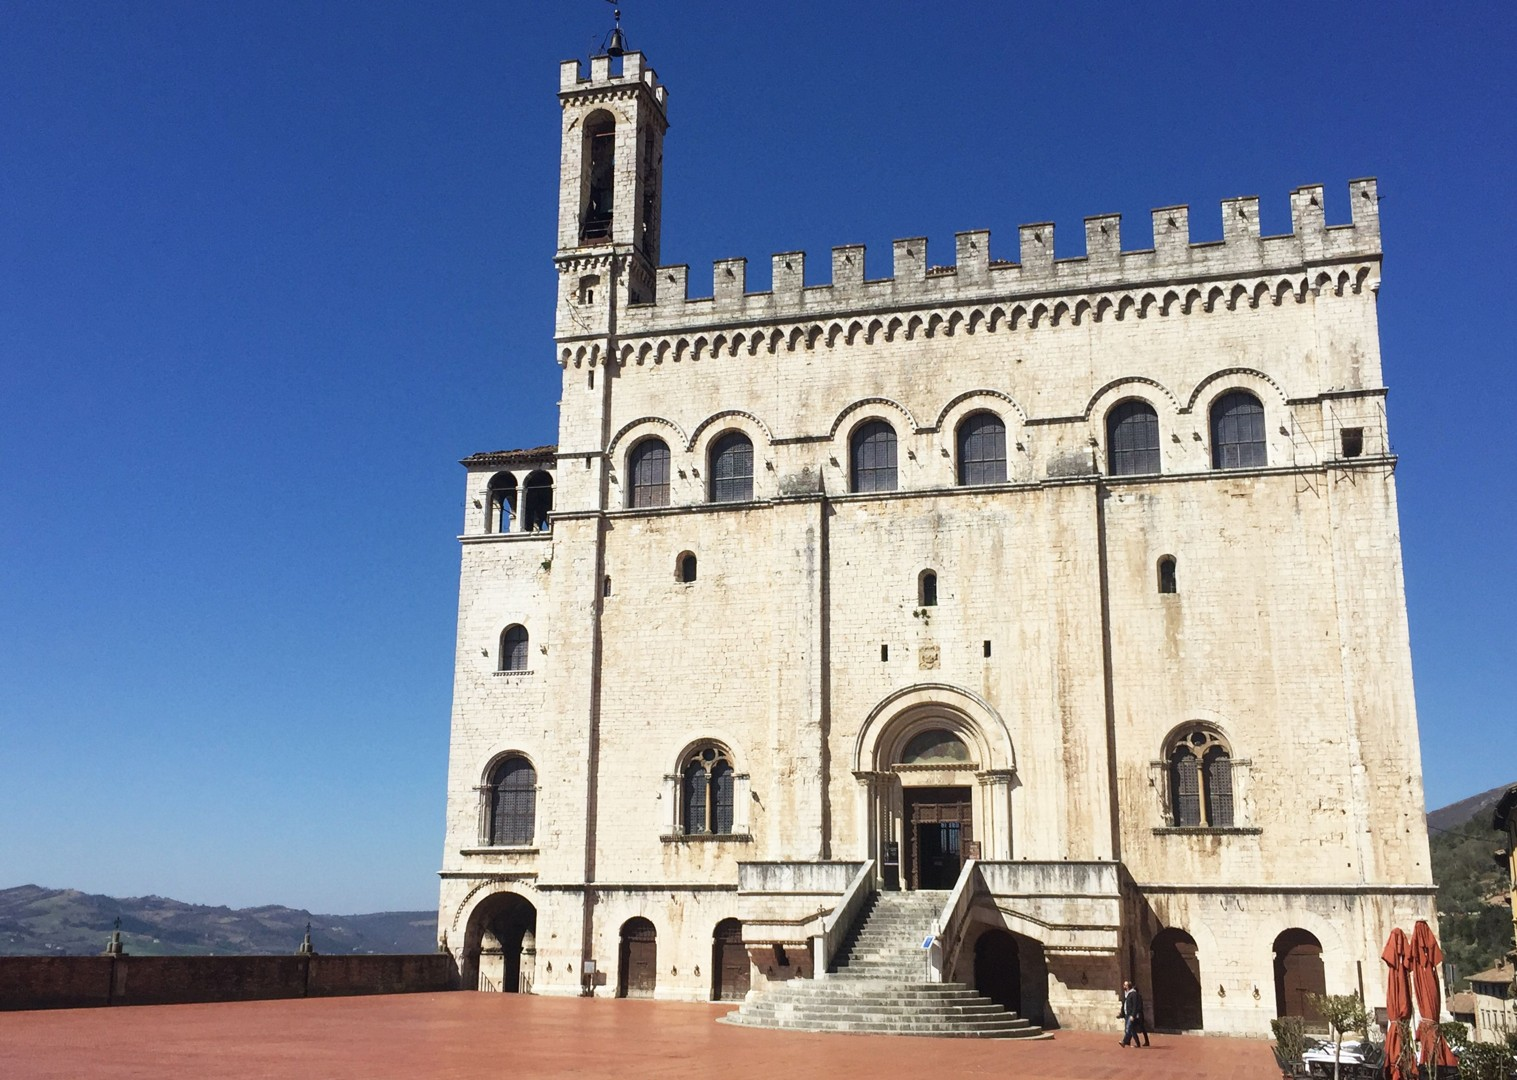 basilica-of-assisi-green-heart-of-umbria-italy-self-guided-leisure-cycling.JPG - Italy - Spirit of Umbria - Family Cycling